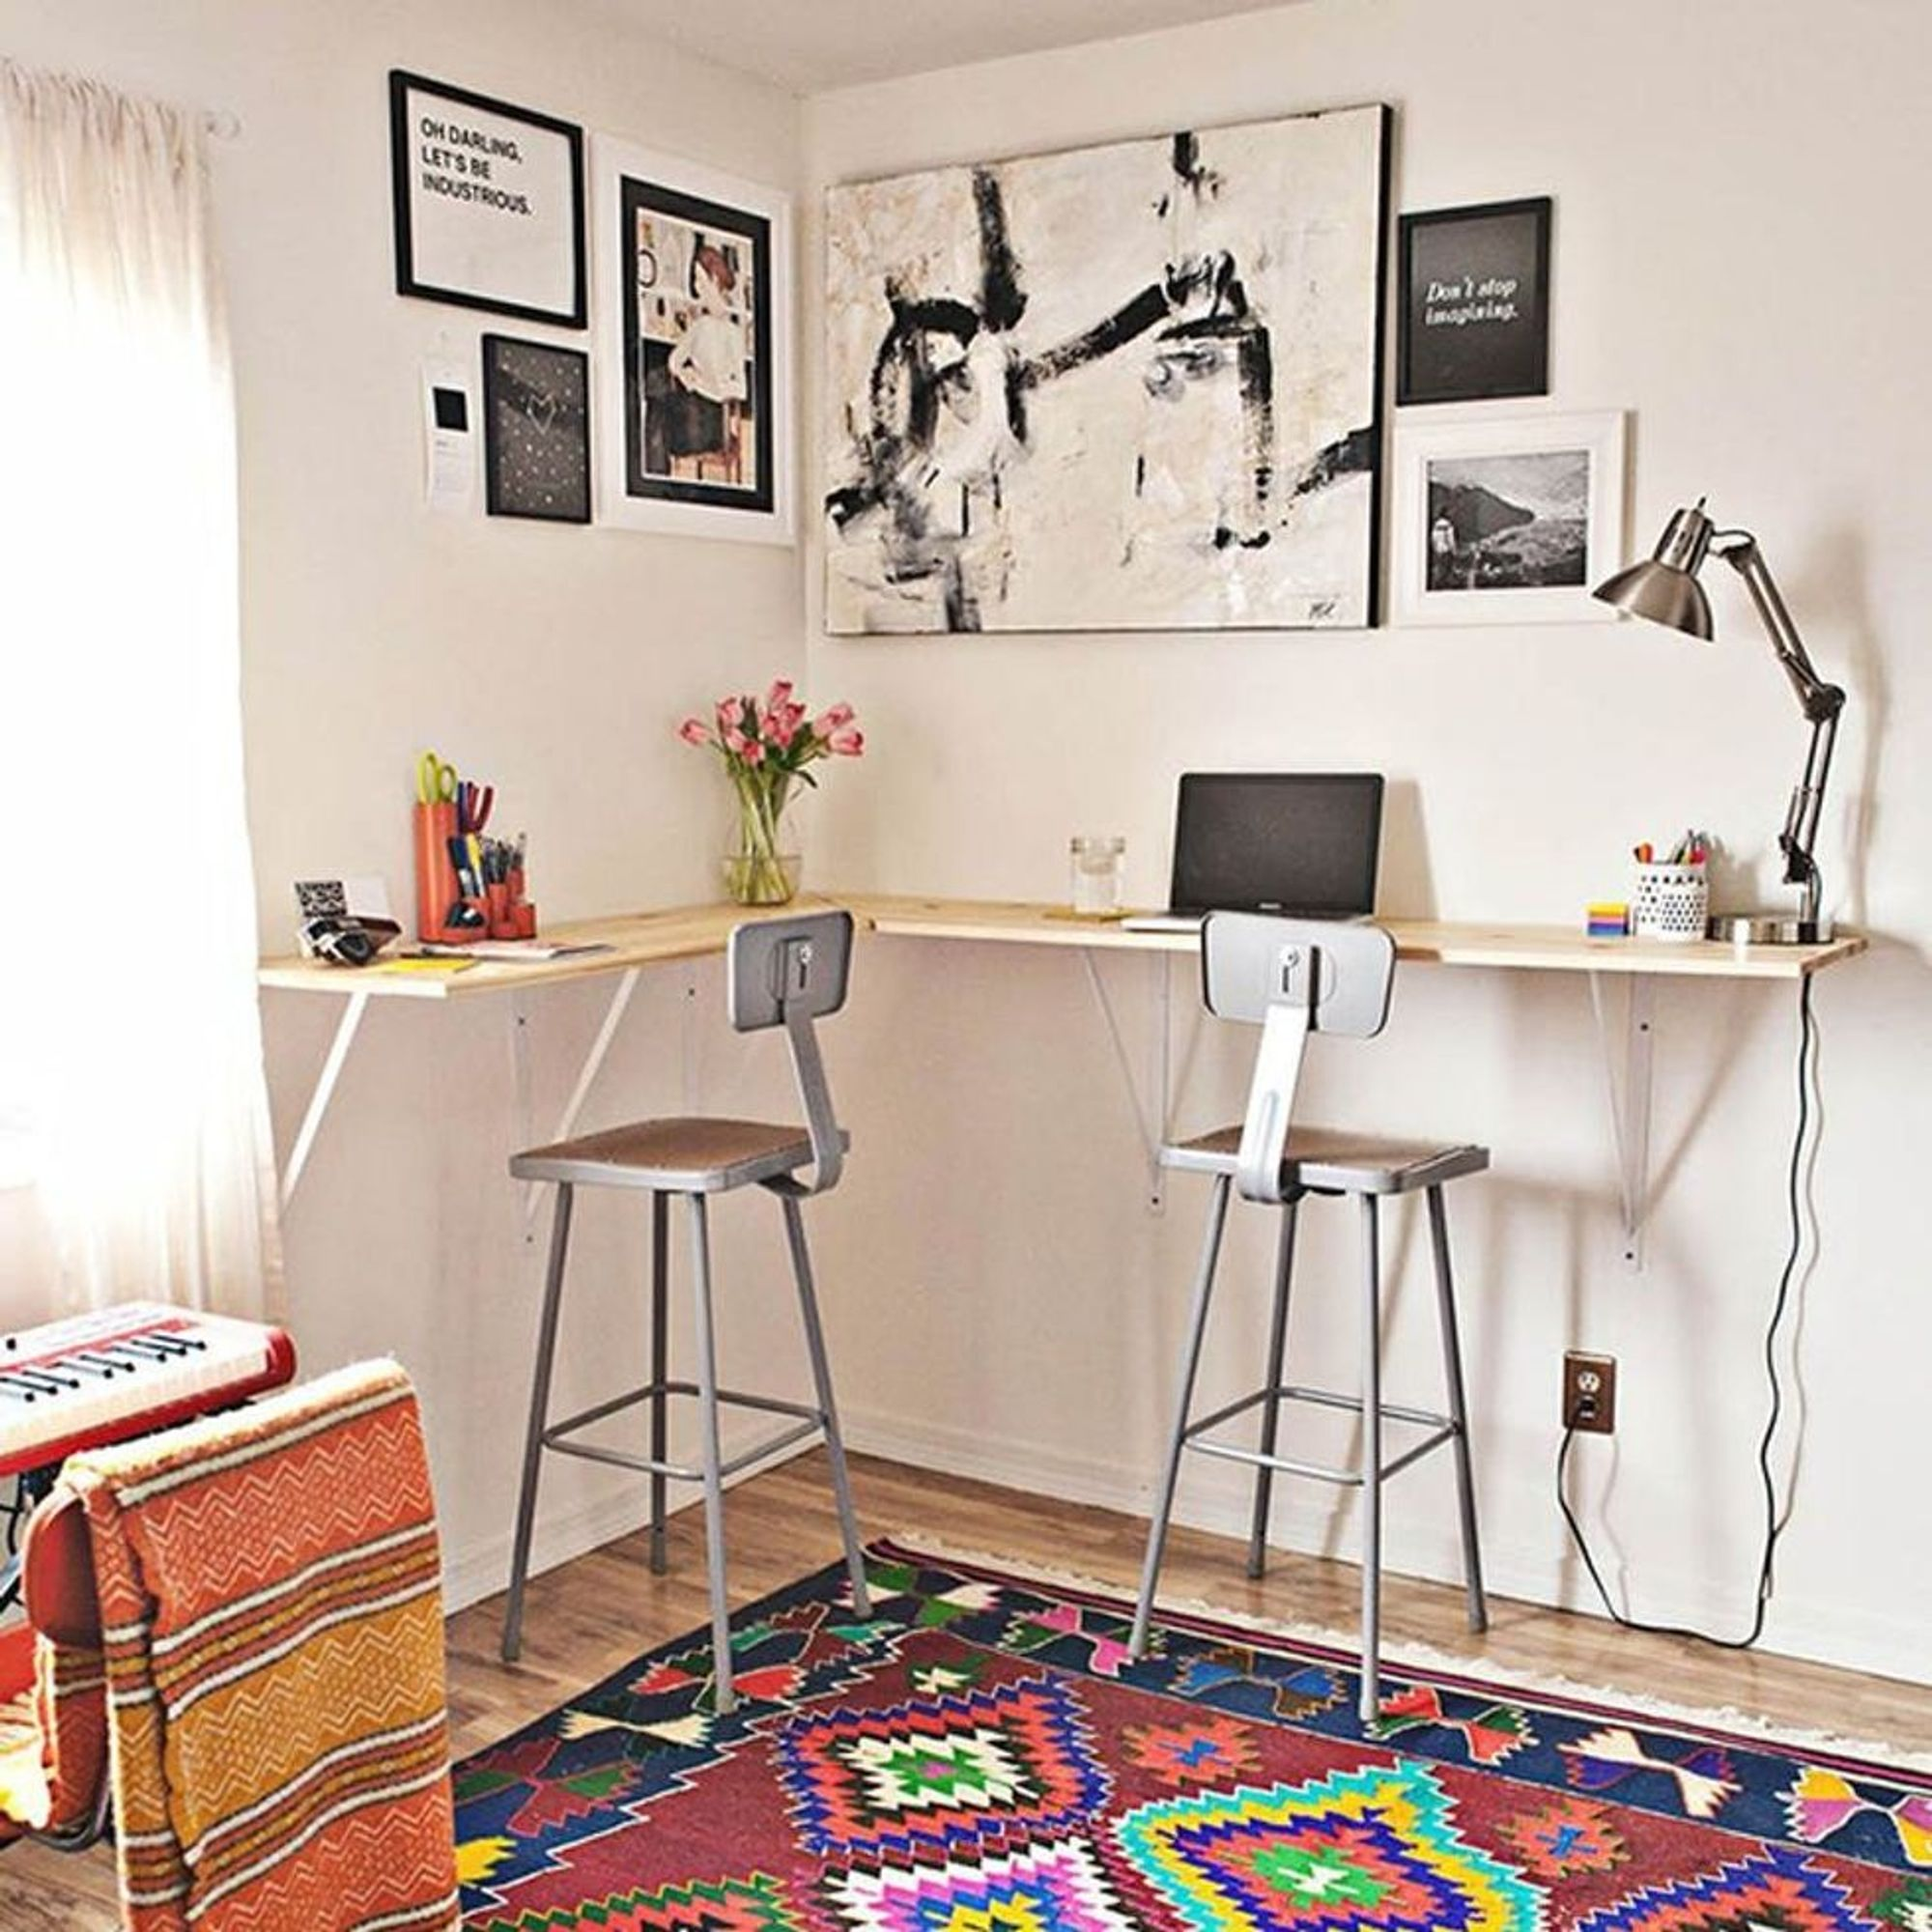 50 Space-Saving Wall-Mounted Desks to Buy or DIY - Brit + Co